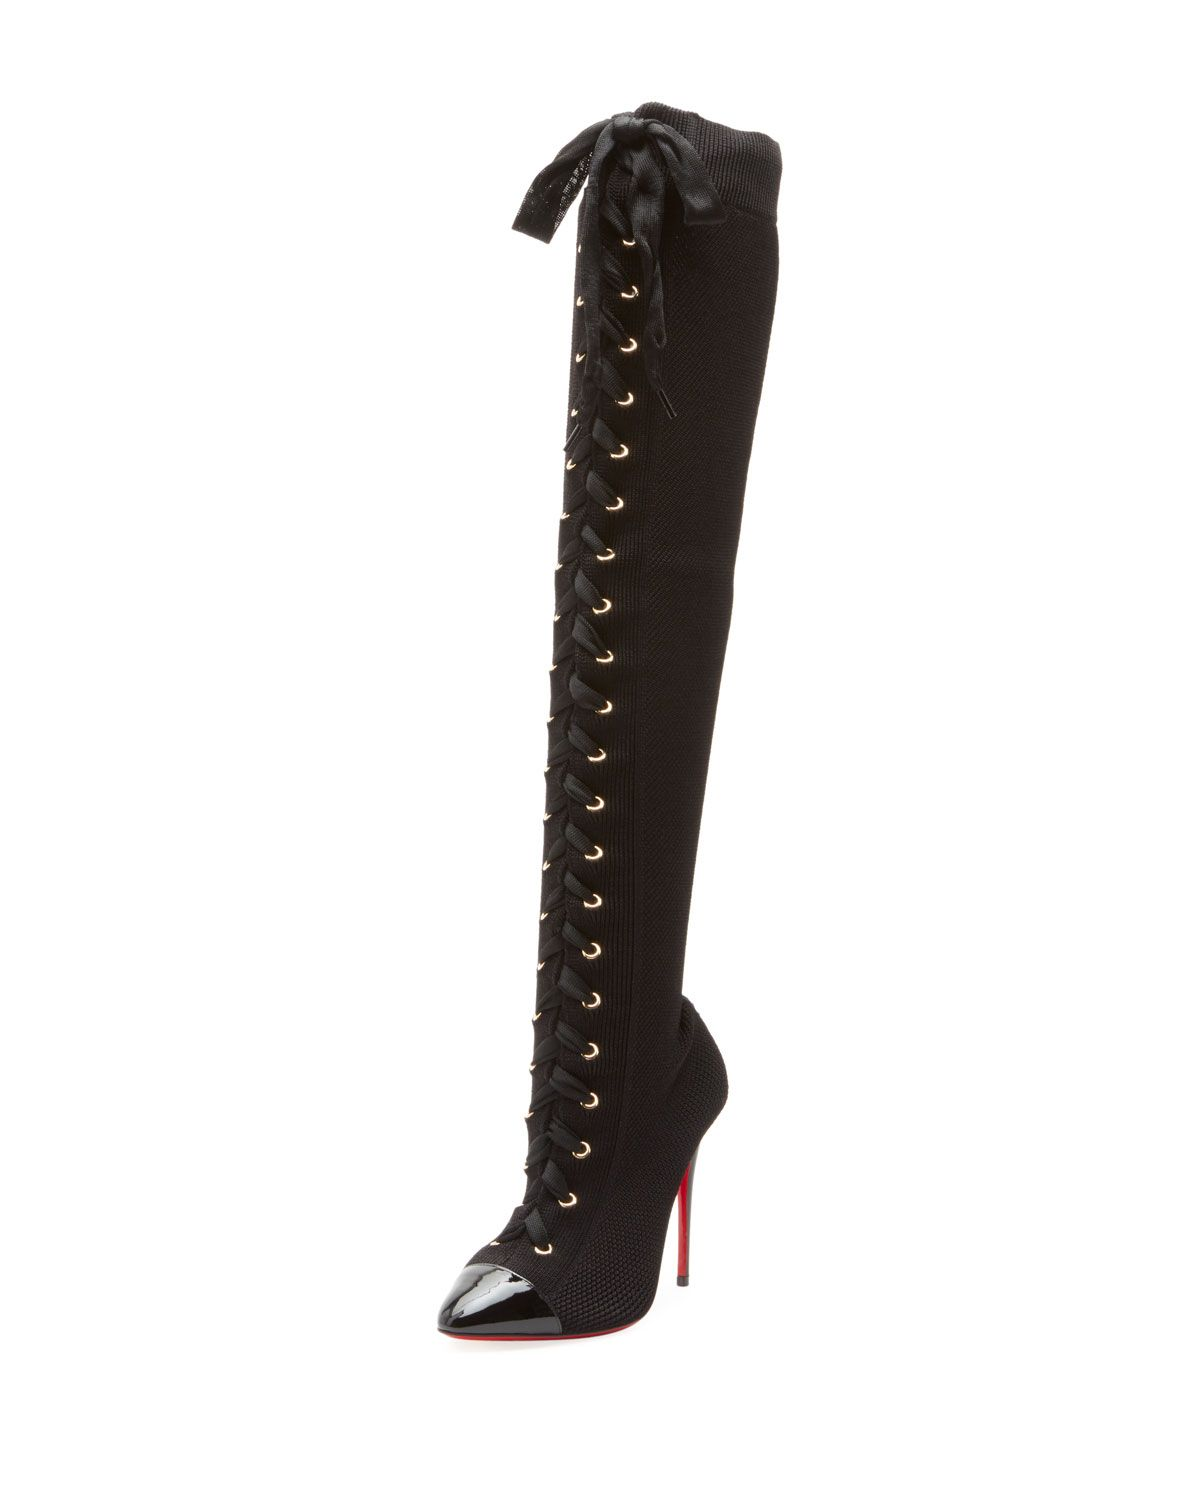 bb270a29c81f Frenchie Over-The-Knee Red Sole Boots